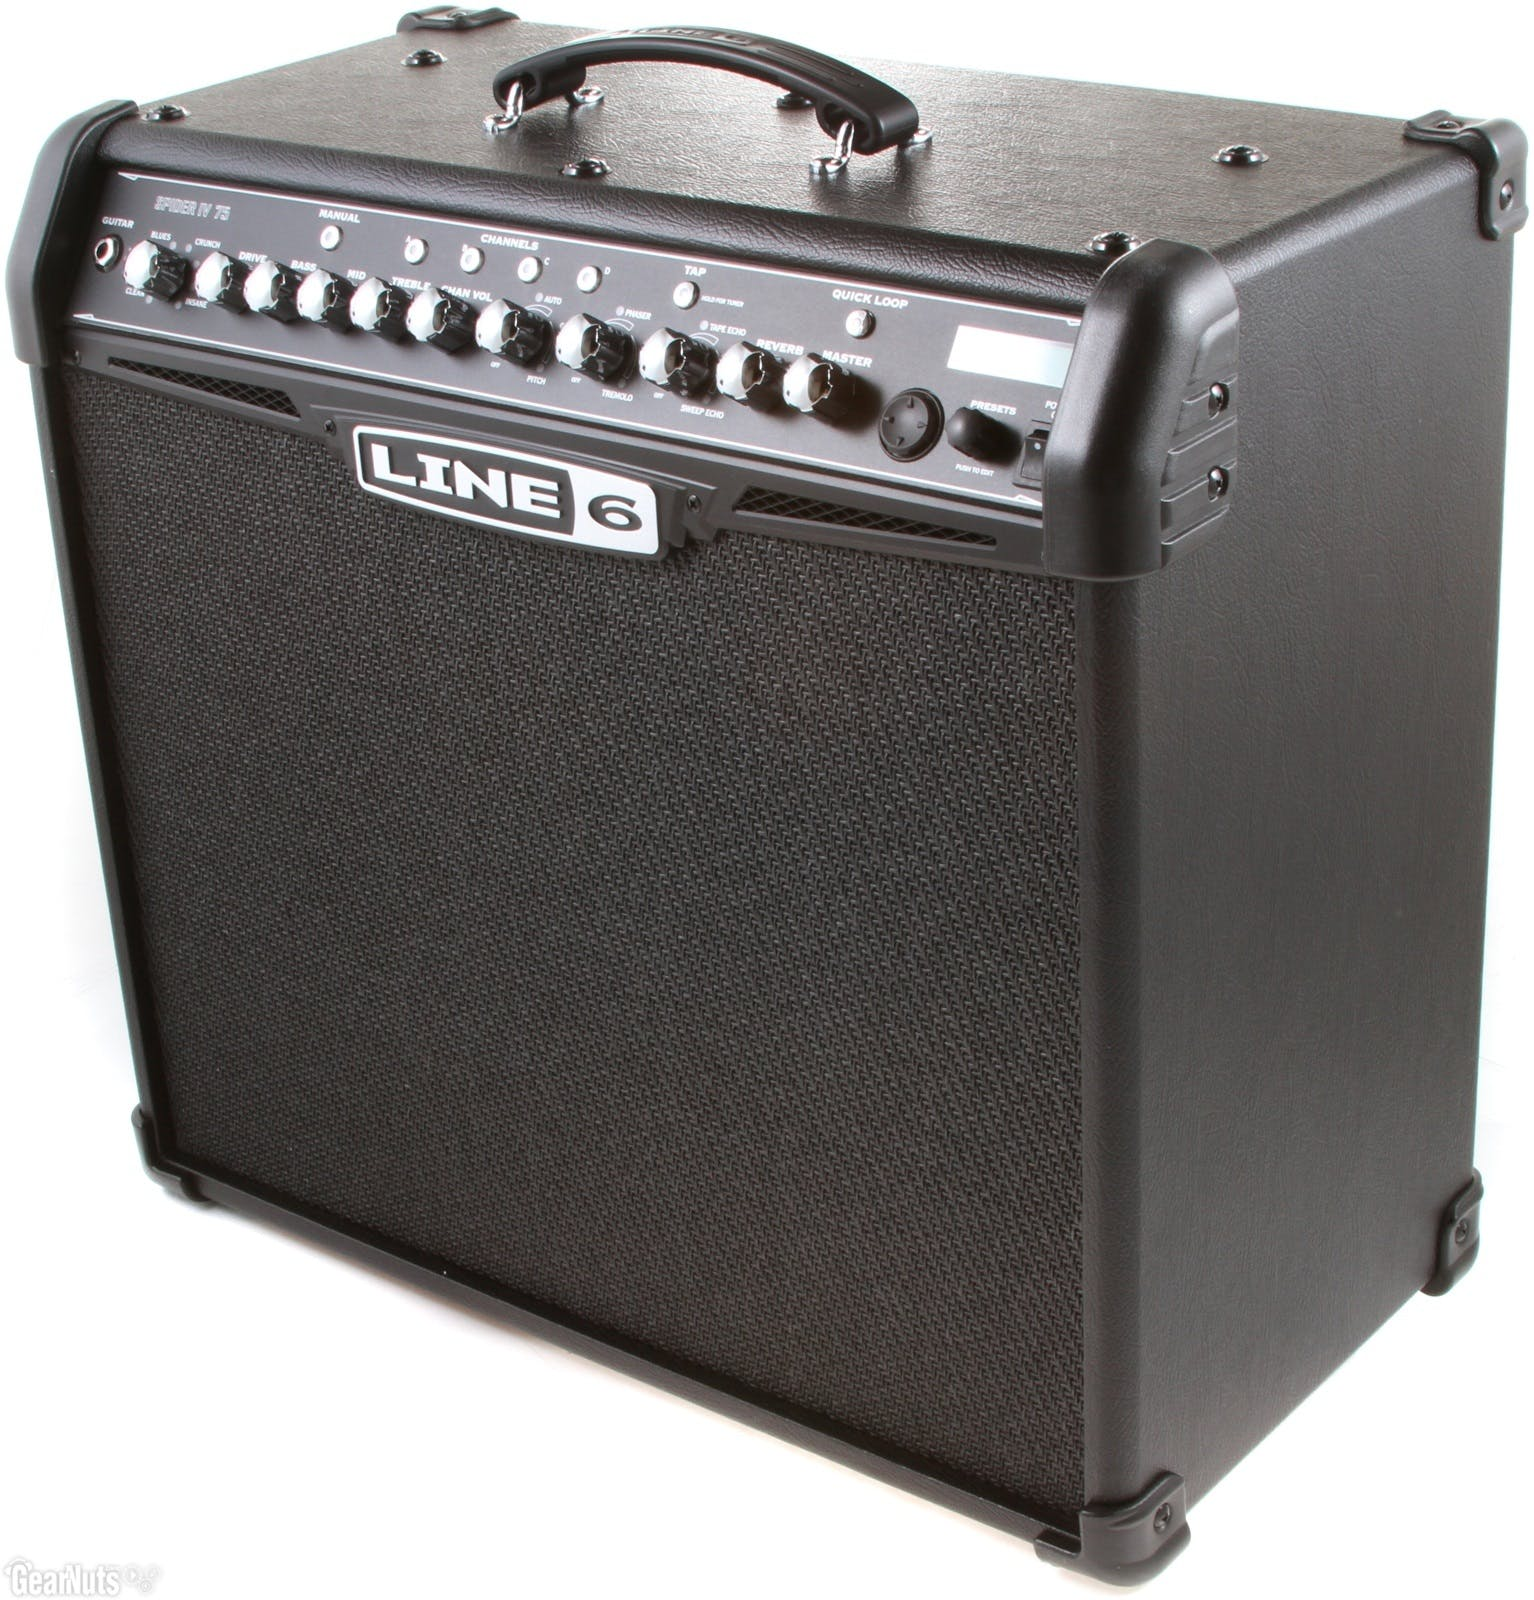 Related keywords amp suggestions for line 6 guitar amps - Related Keywords Amp Suggestions For Line 6 Guitar Amps 26